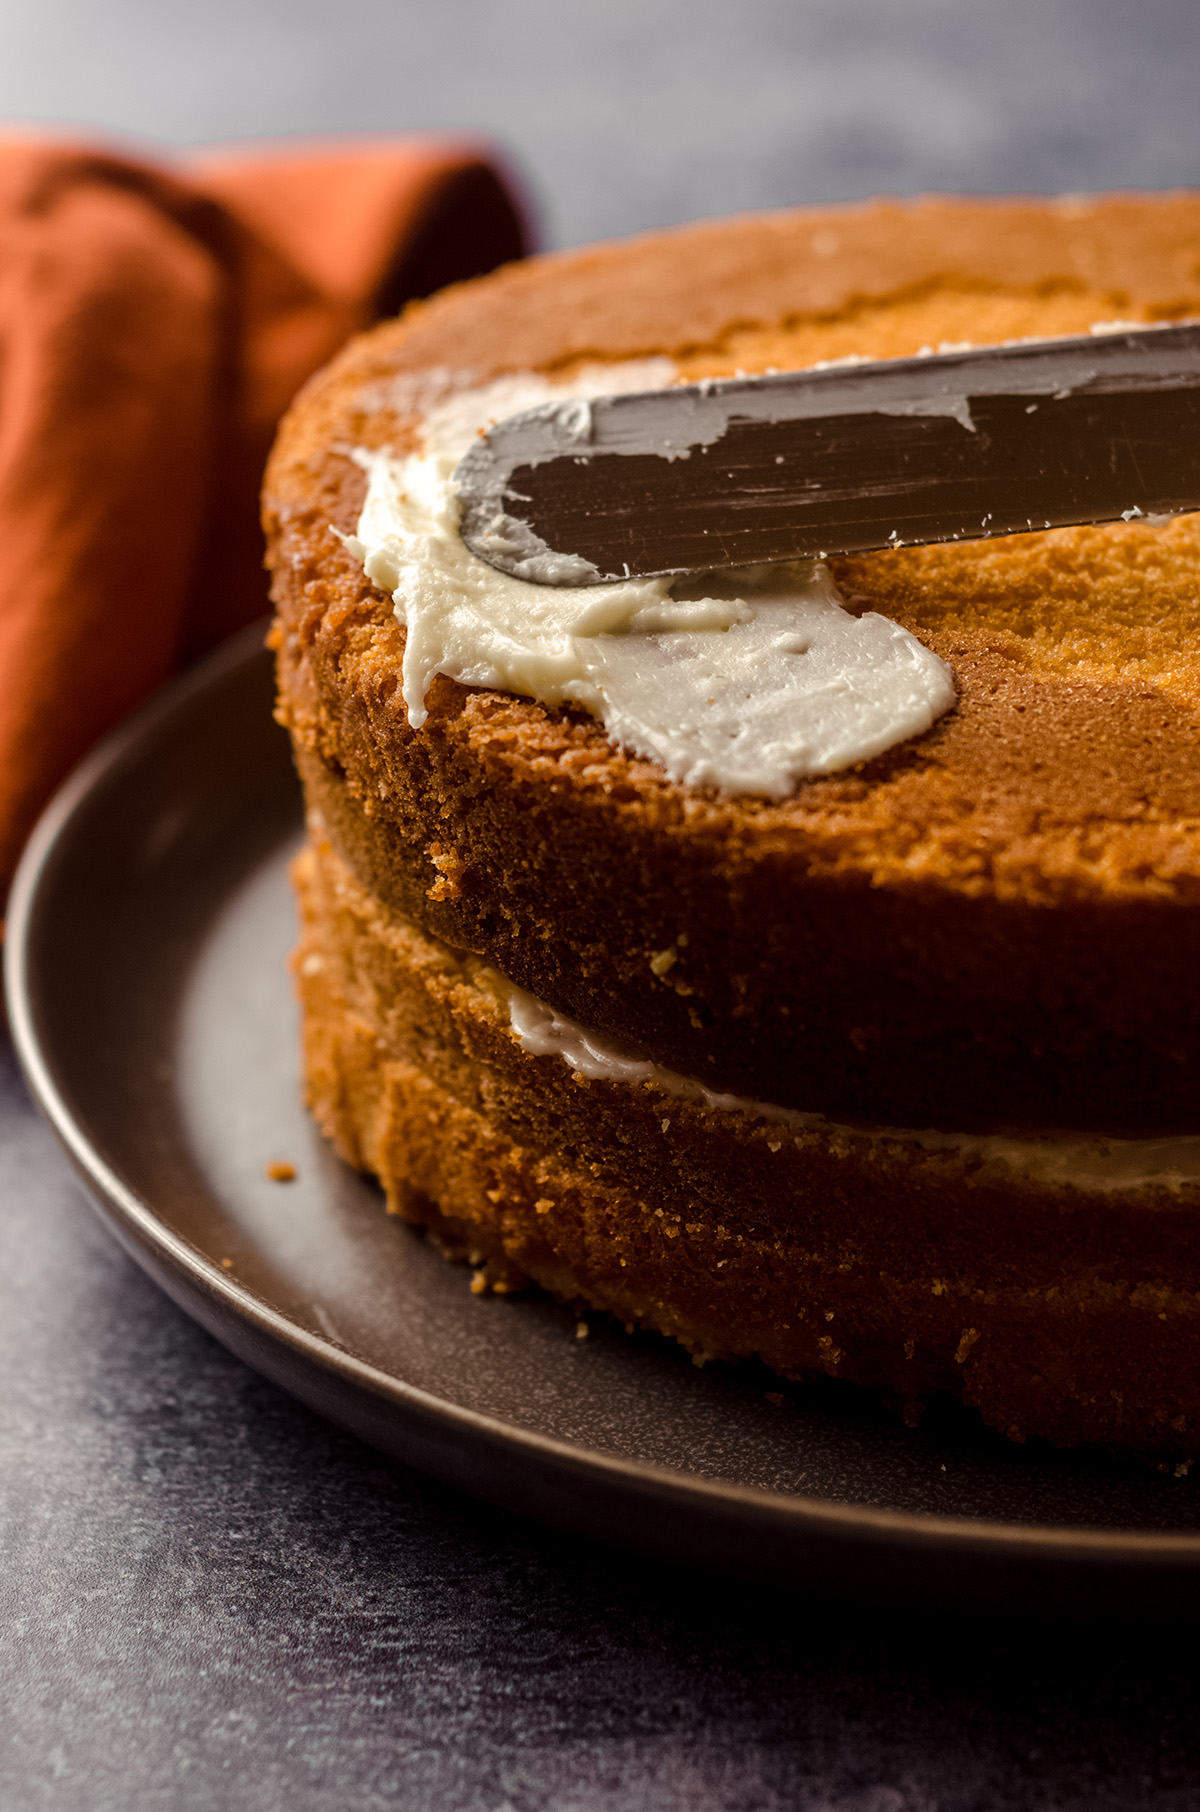 stacked orange creamsicle layer cake being covered in orange cream cheese frosting with a metal spatula